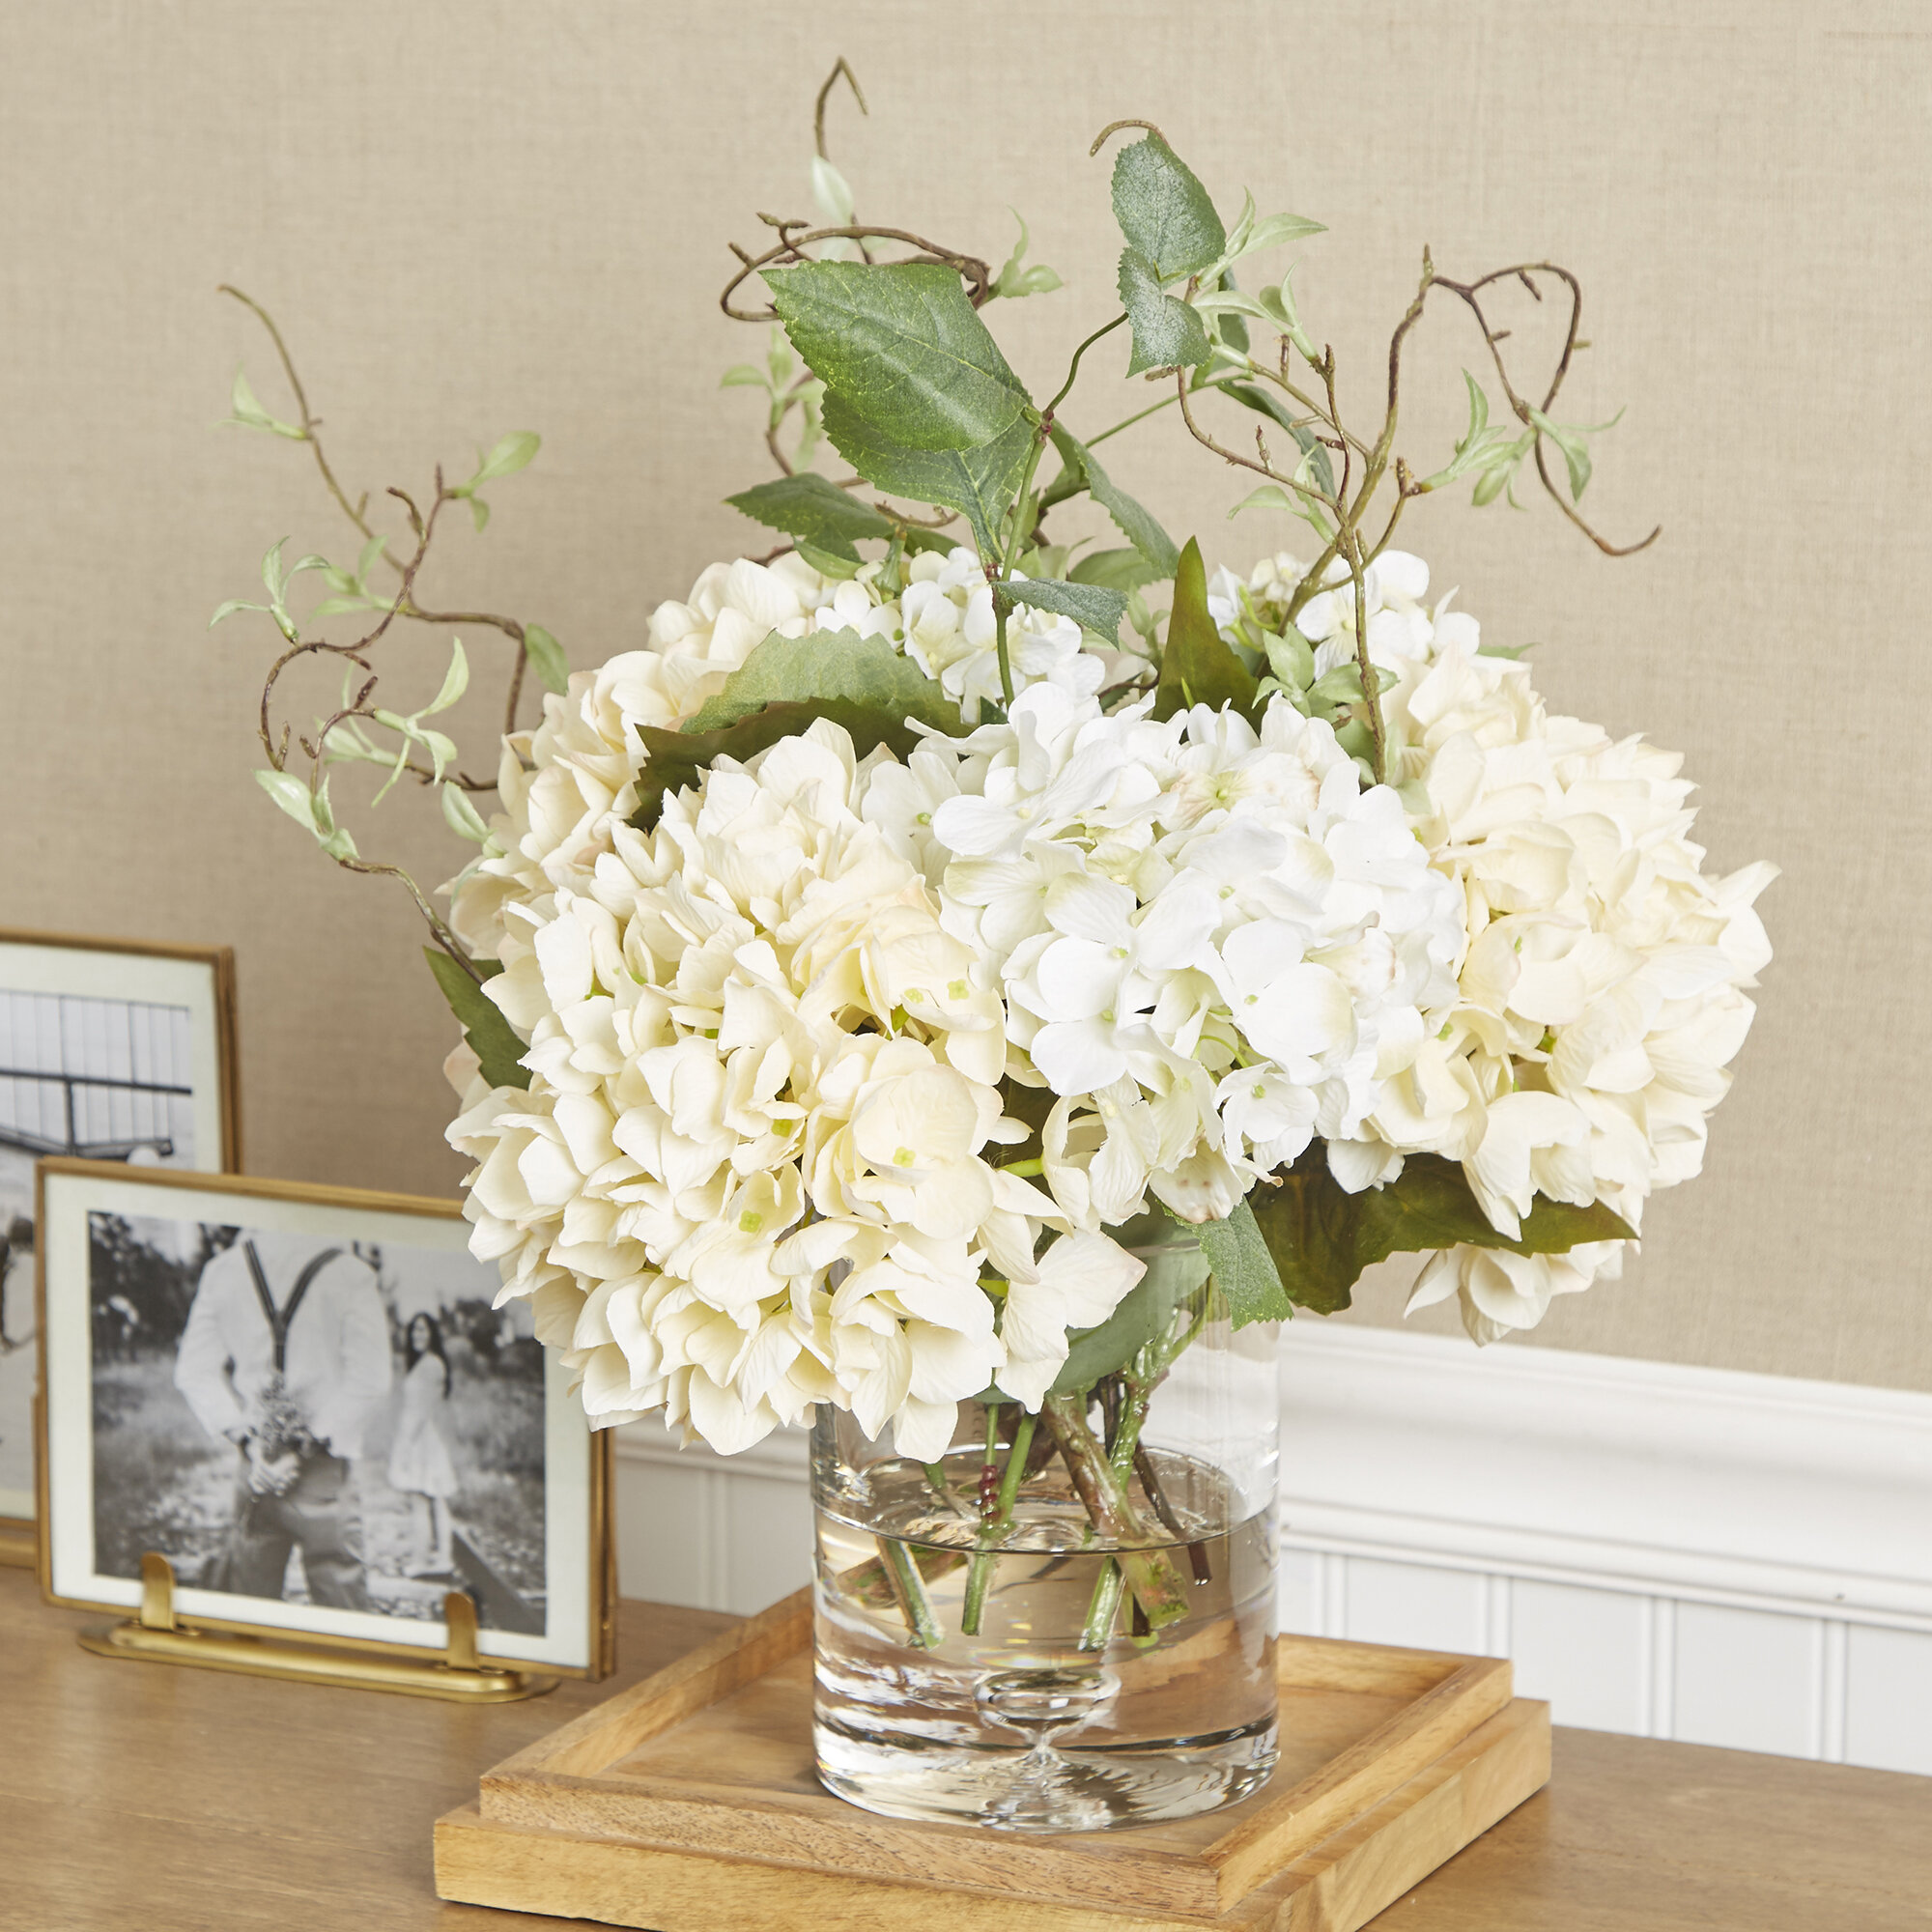 Faux Hydrangea Centerpiece In Vase Reviews Joss Main